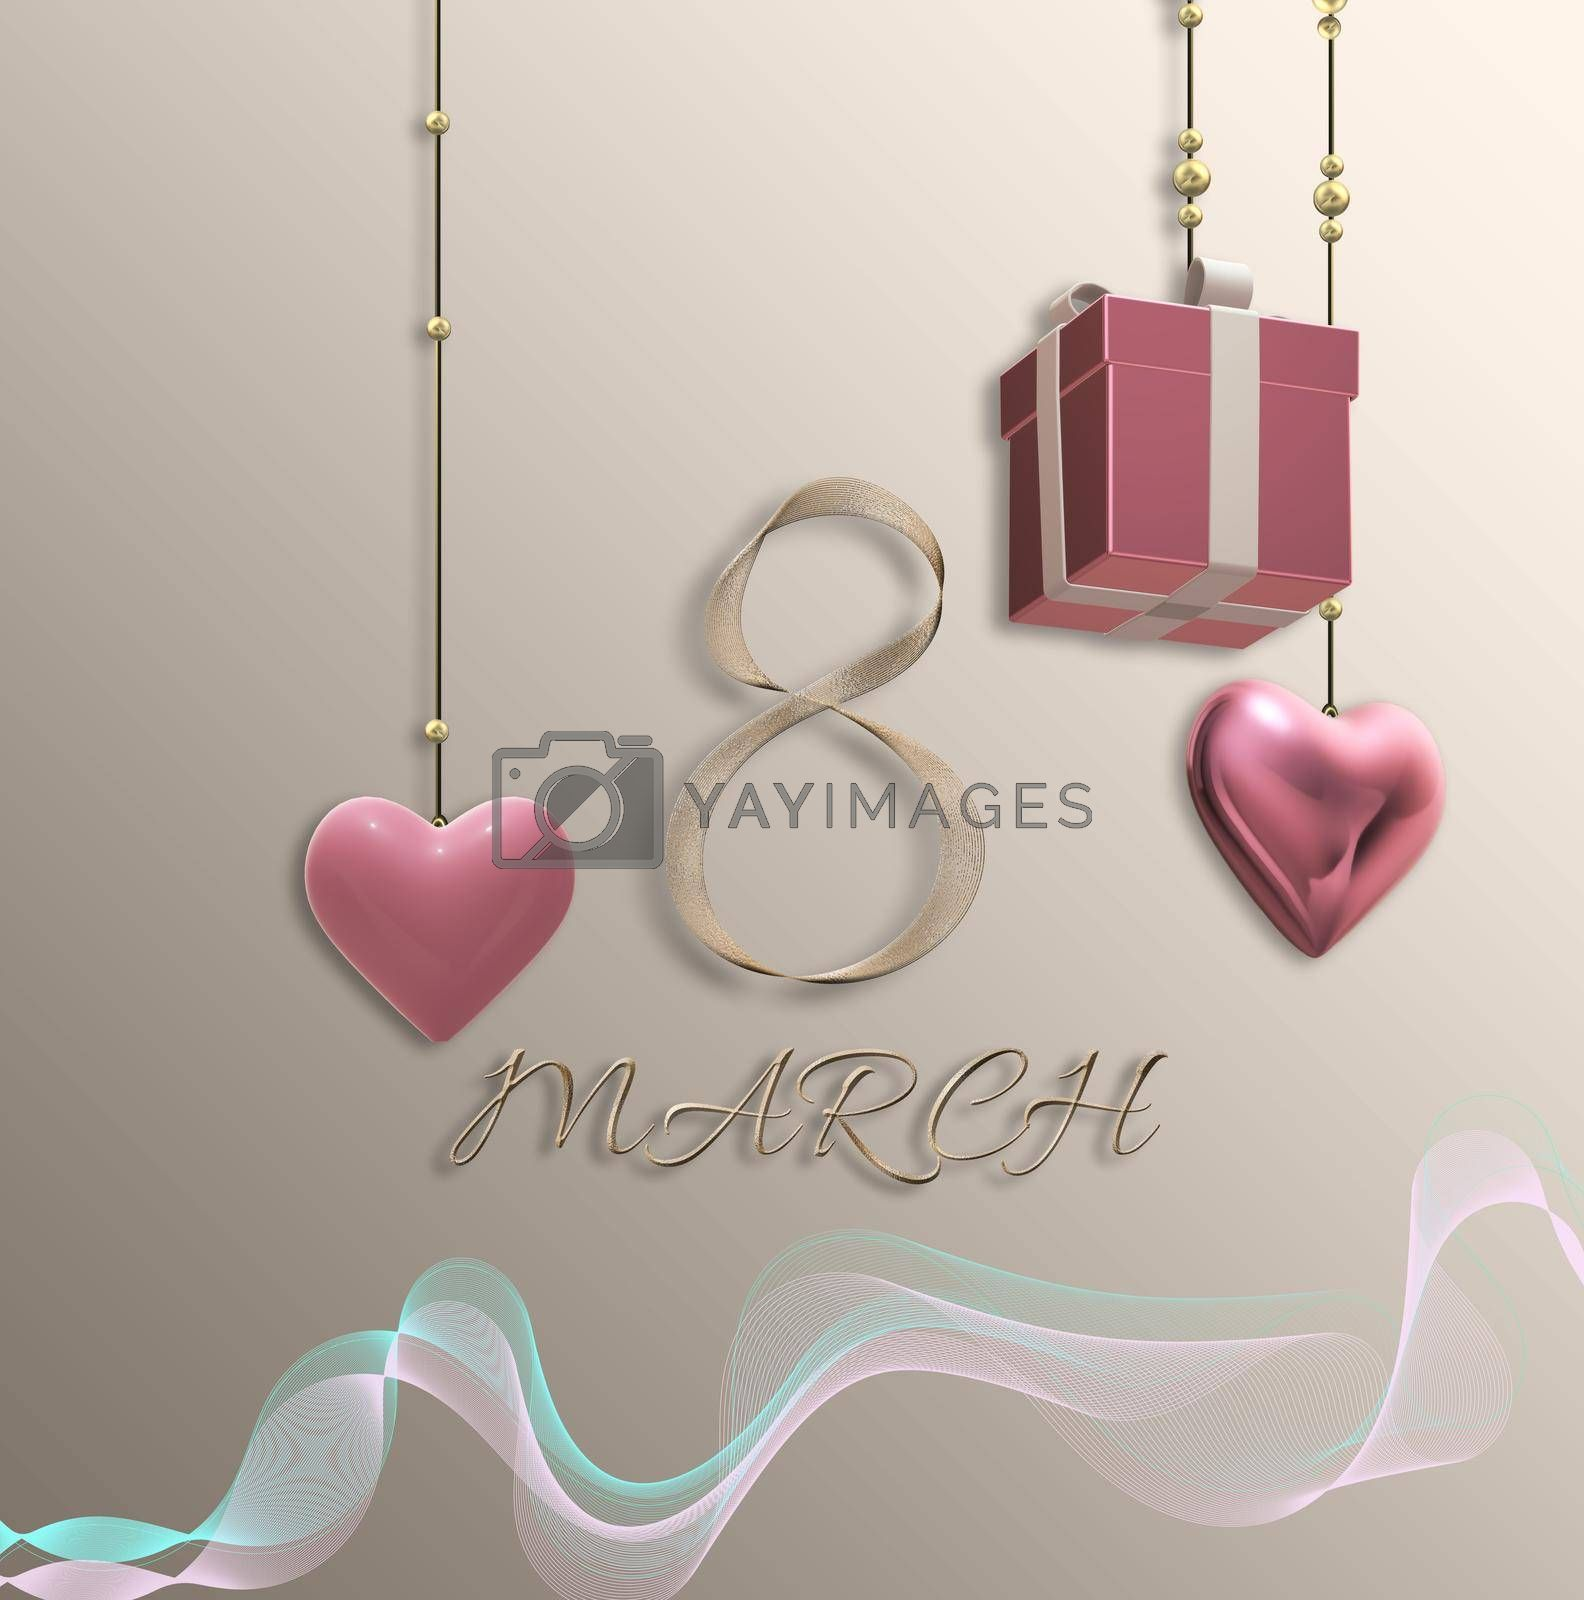 Beautiful 8th of March greeting card. Women's Day elegant beautiful design template. Text 8 March made of golden shiny ribbon. Hanging gift box, 3D hearts over pastel gold. 3D illustration